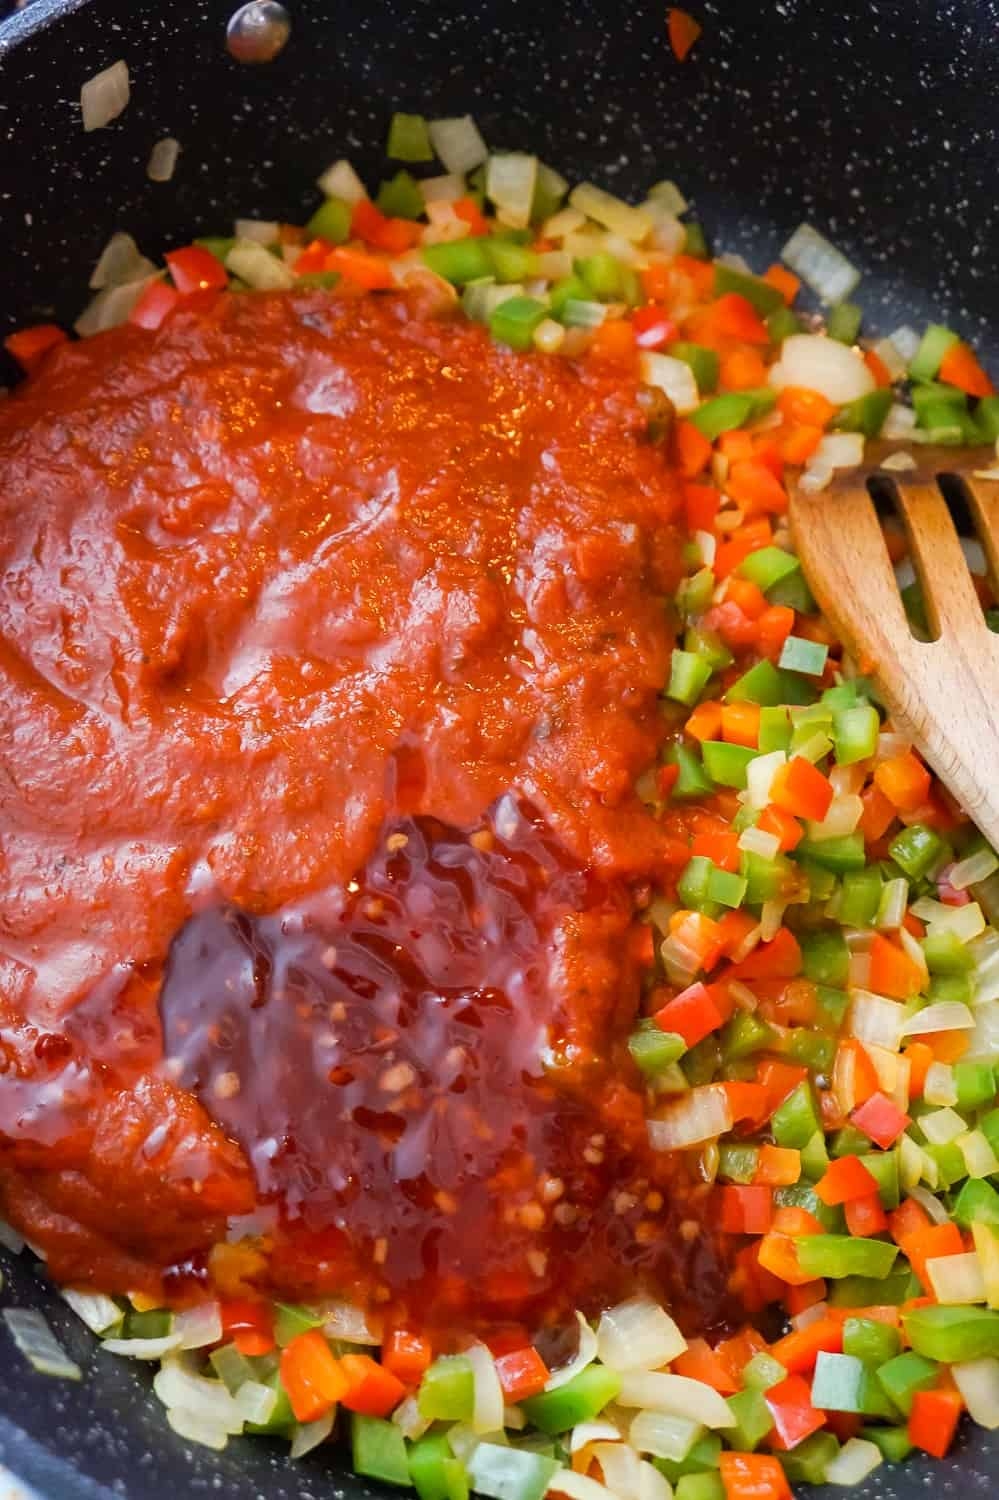 marinara sauce, sweet chili sauce, diced green peppers, diced red peppers and diced onions